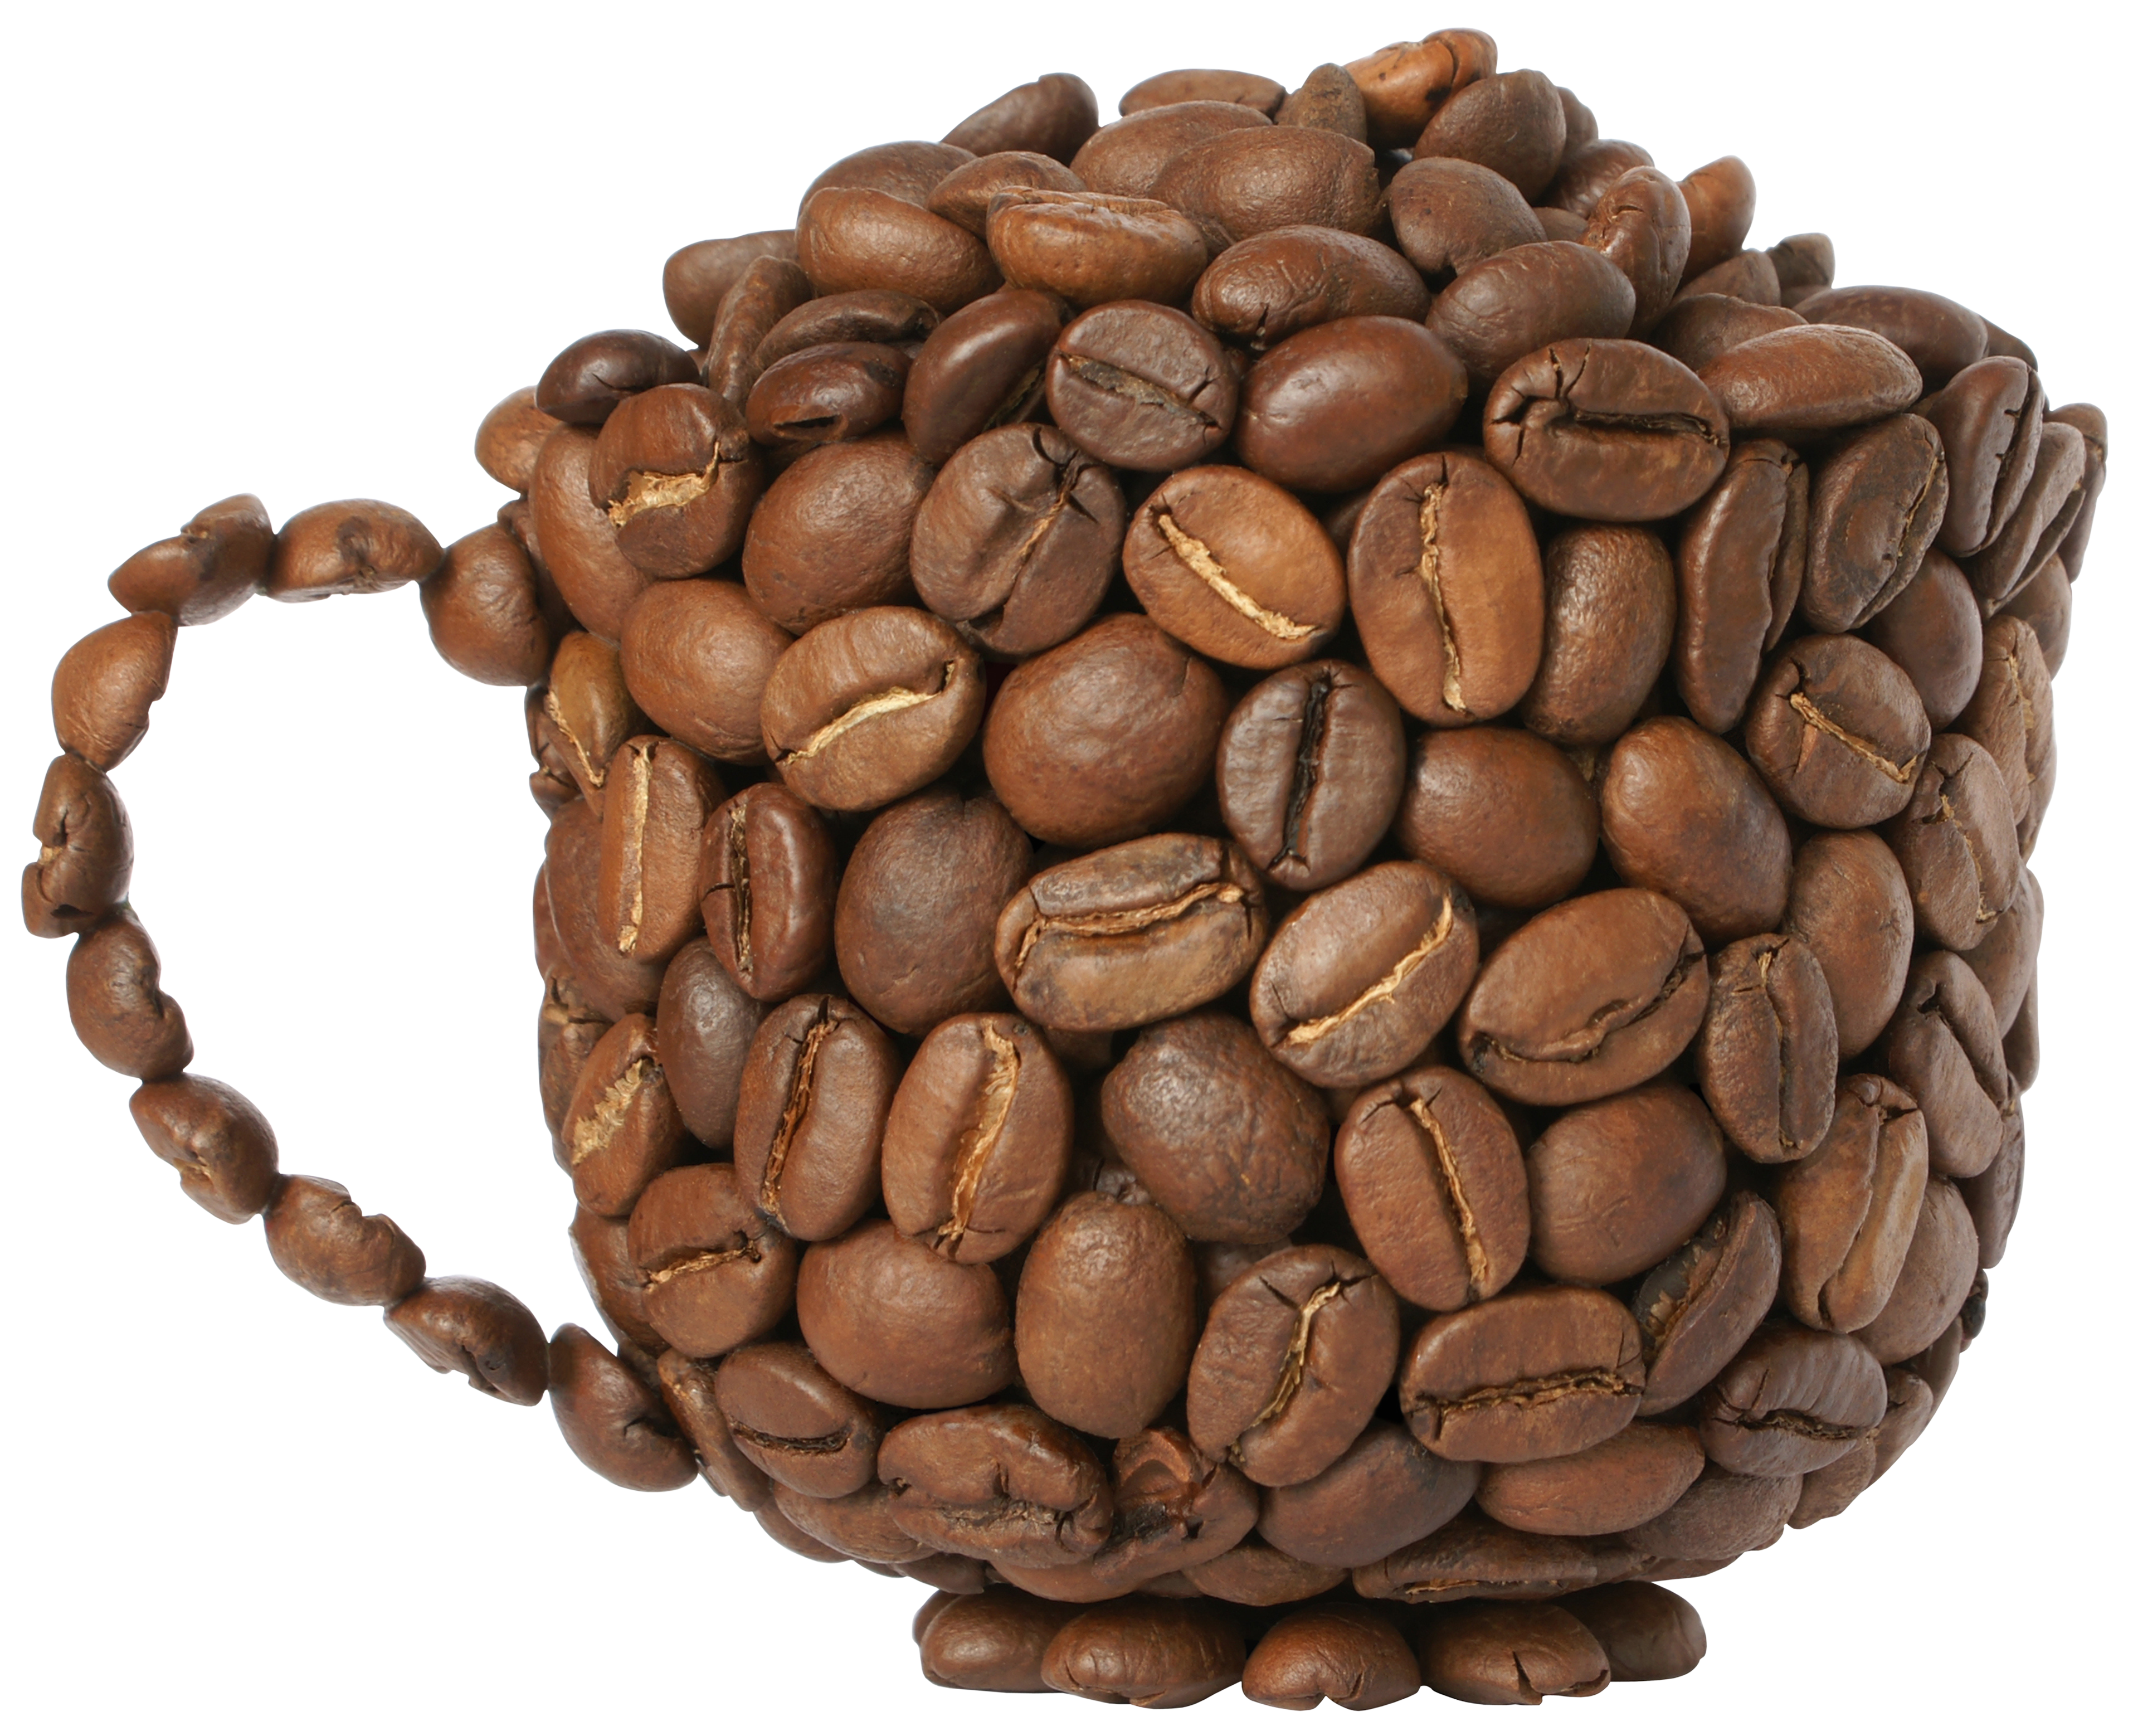 Coffee clipart newspaper. Pot of beans png